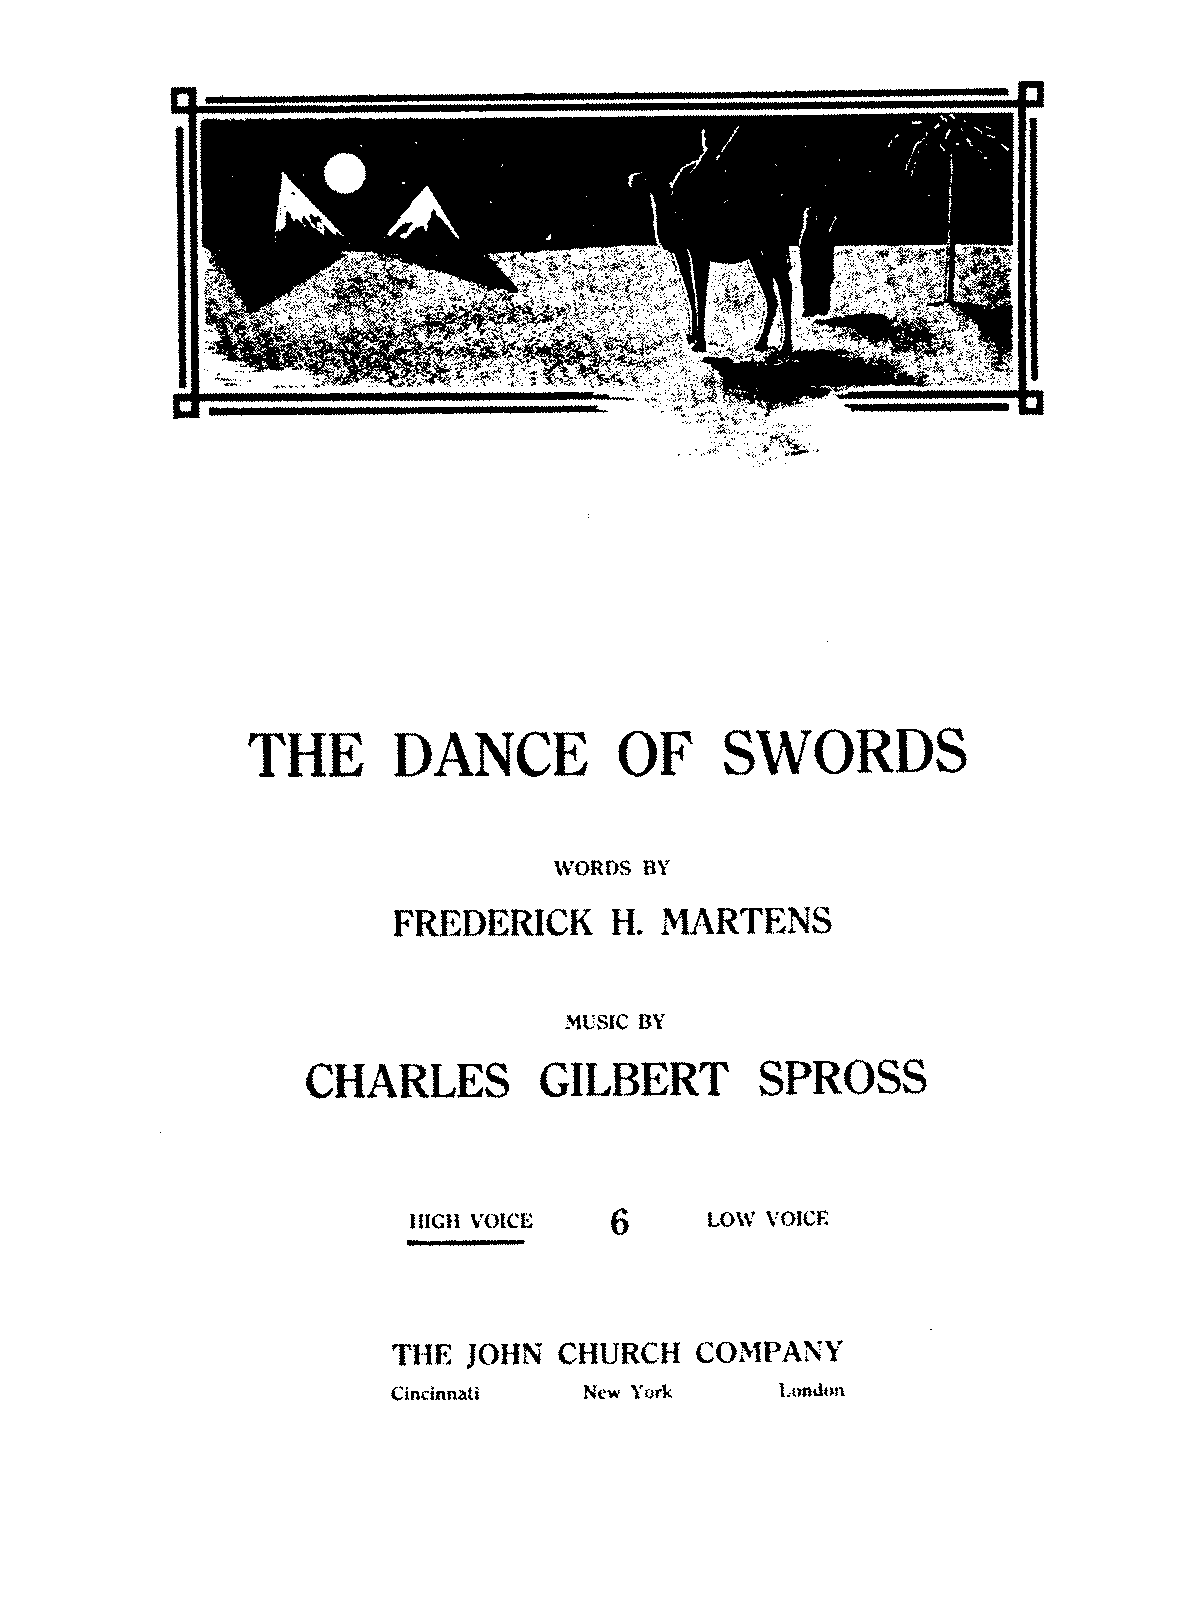 PMLP231678-Spross The Dance of Swords cropped.pdf